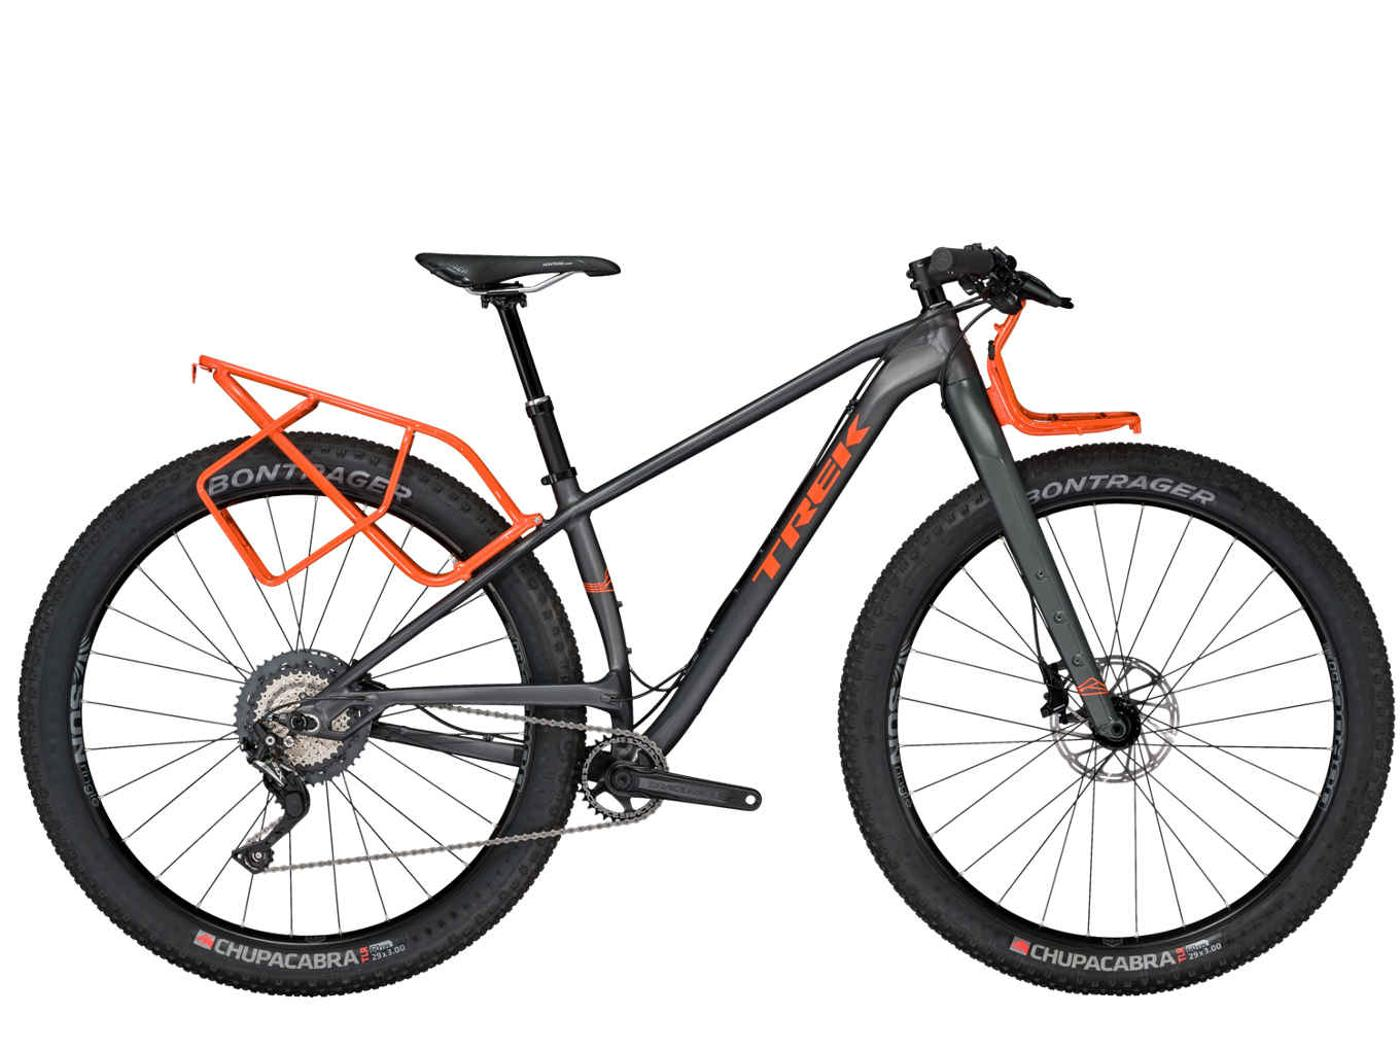 Trek's 1120 29+ Touring Bike with Integrated Racks